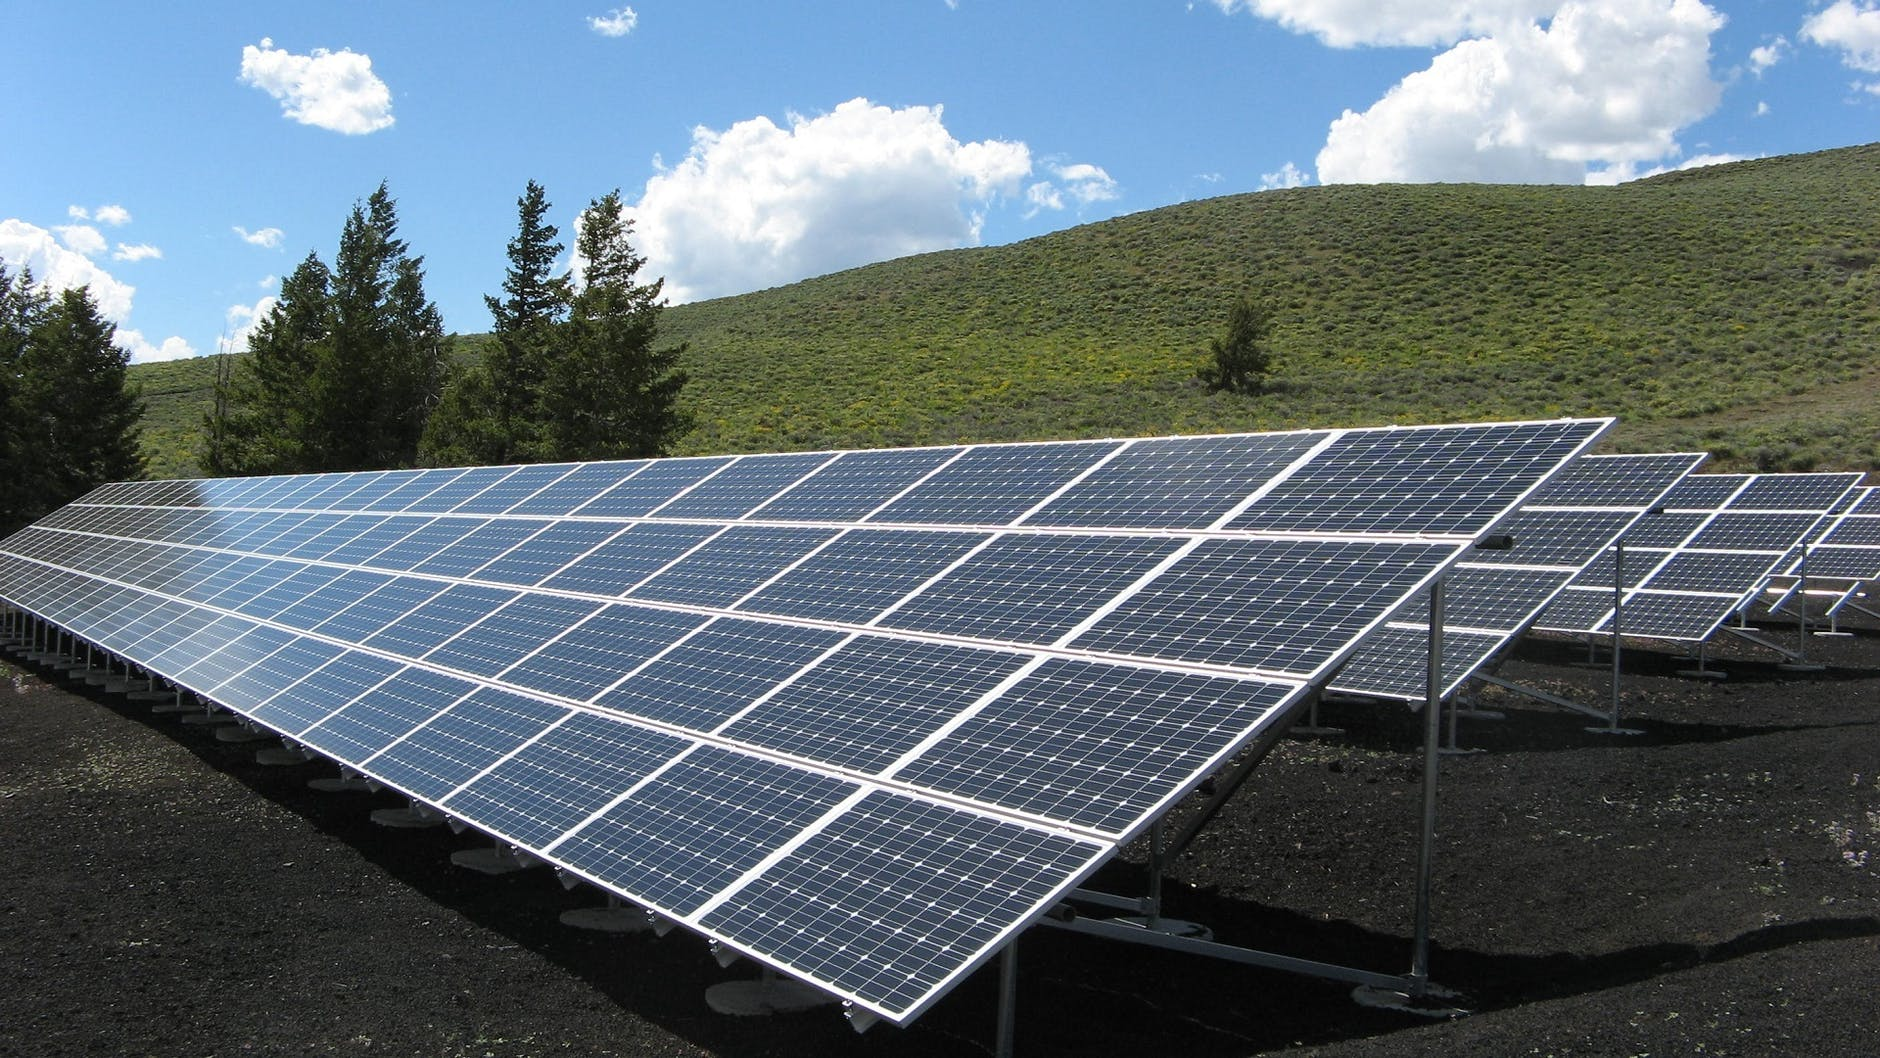 solar-panel-array-power-sun-electricity-